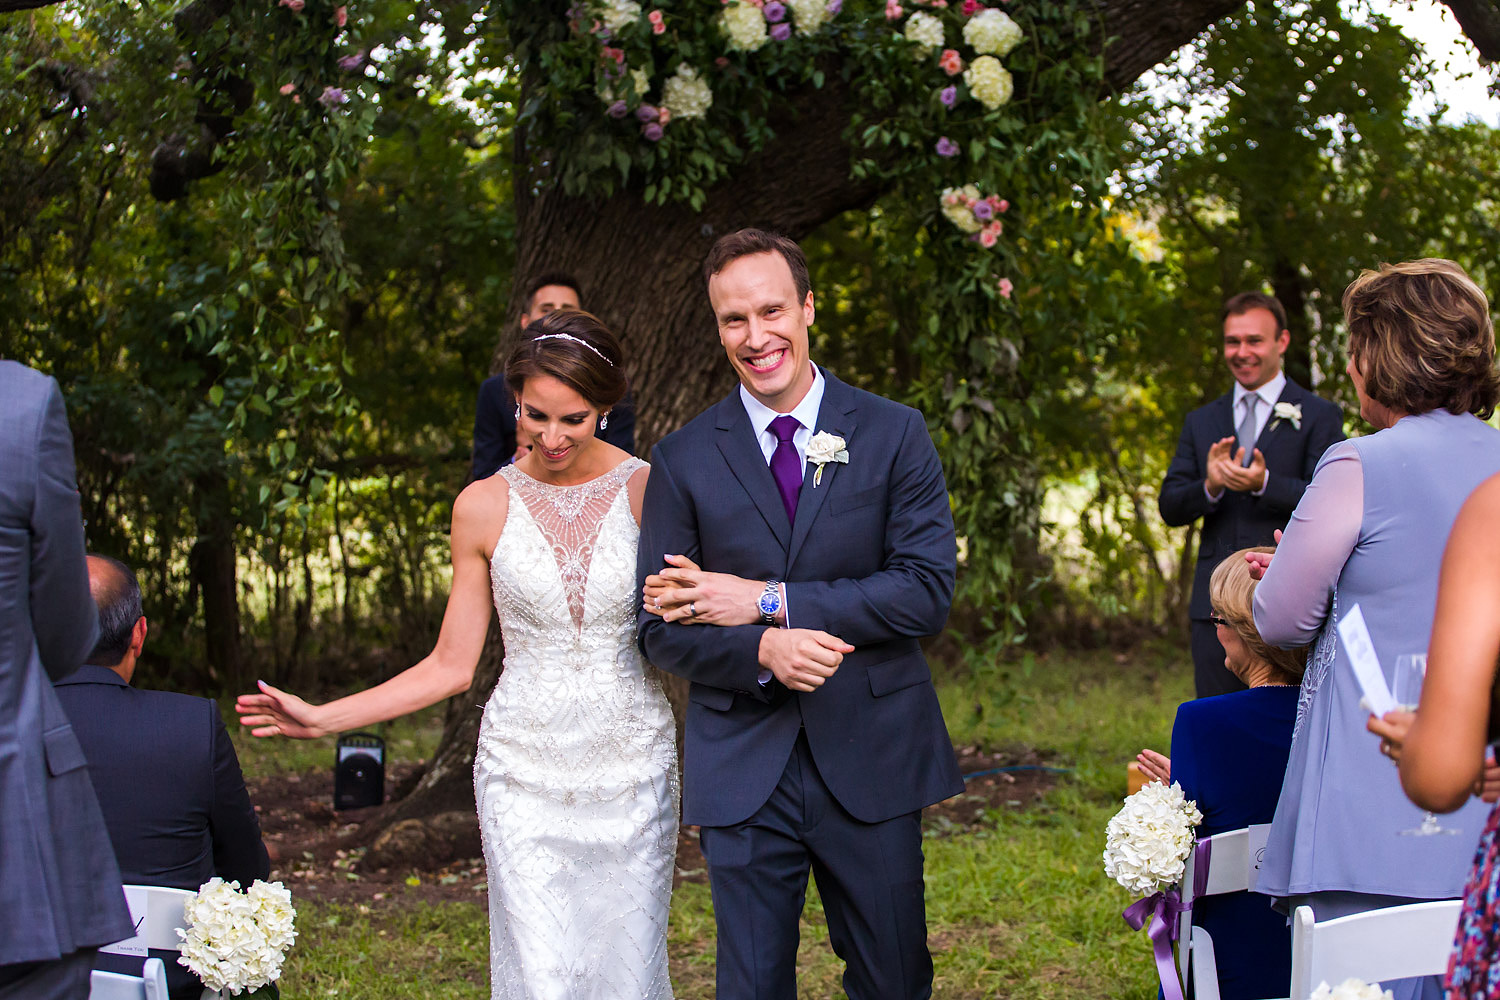 winfield-inn-wedding-austin.51.jpg